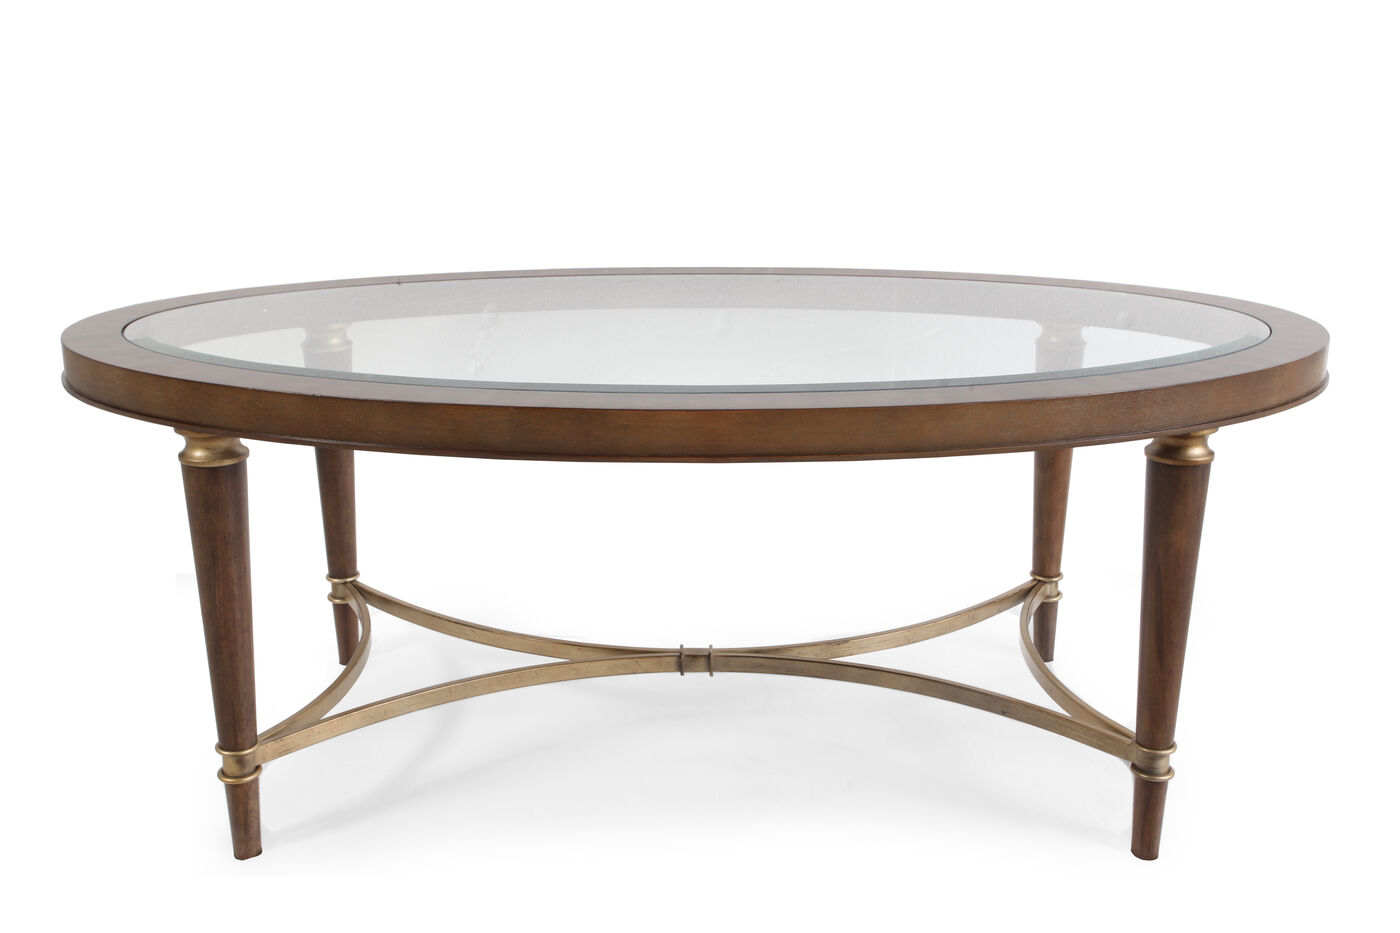 Broyhill Kristen Oval Cocktail Table